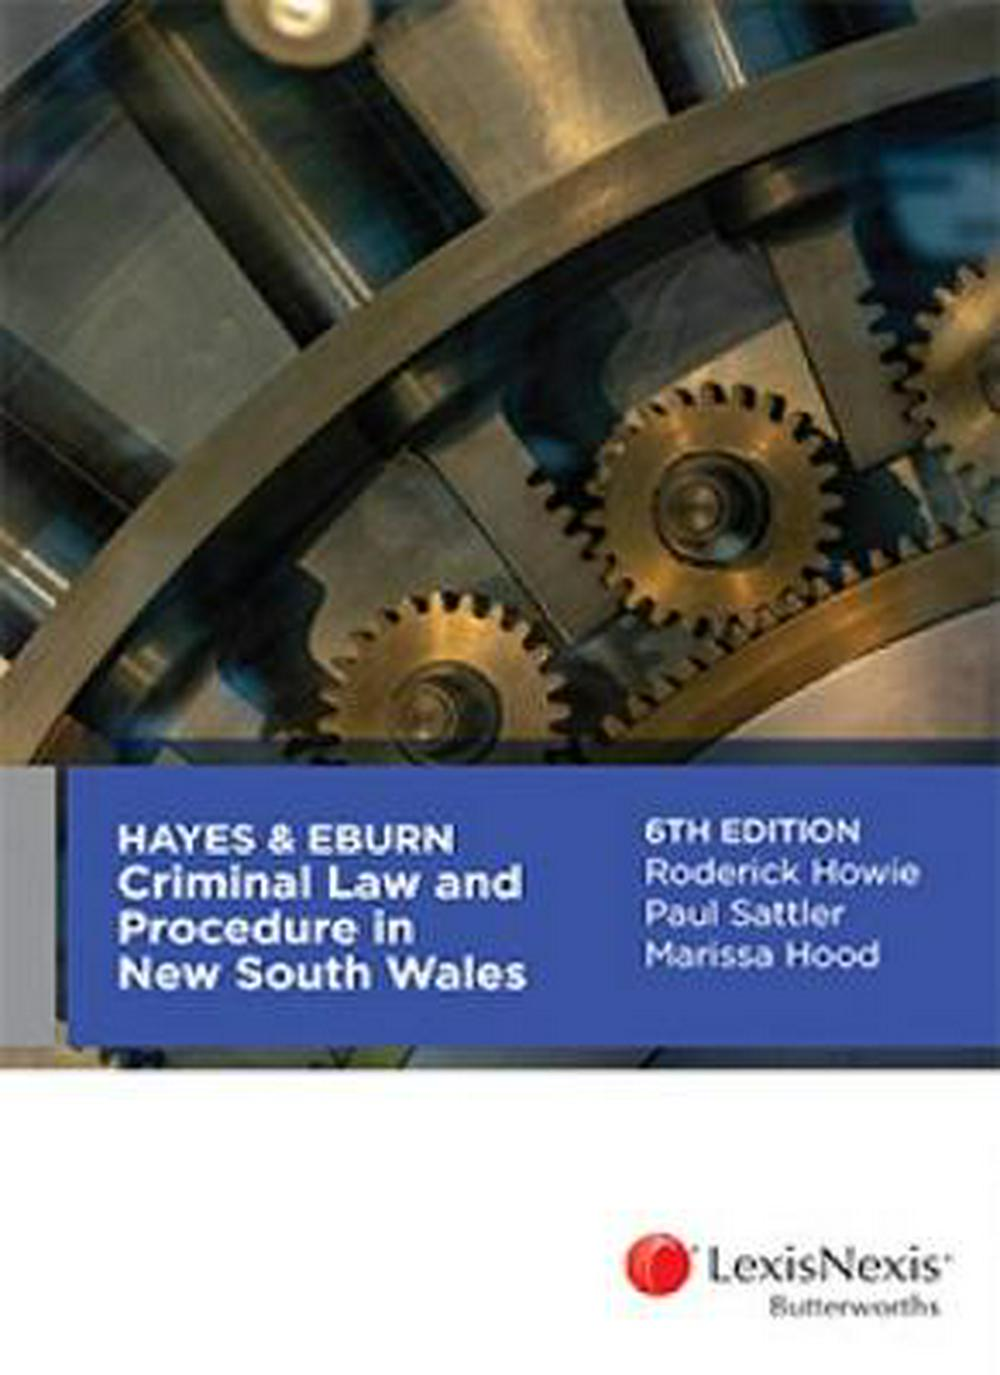 Hayes & Eburn Criminal Law and Procedure in New South Wales, 6th edition